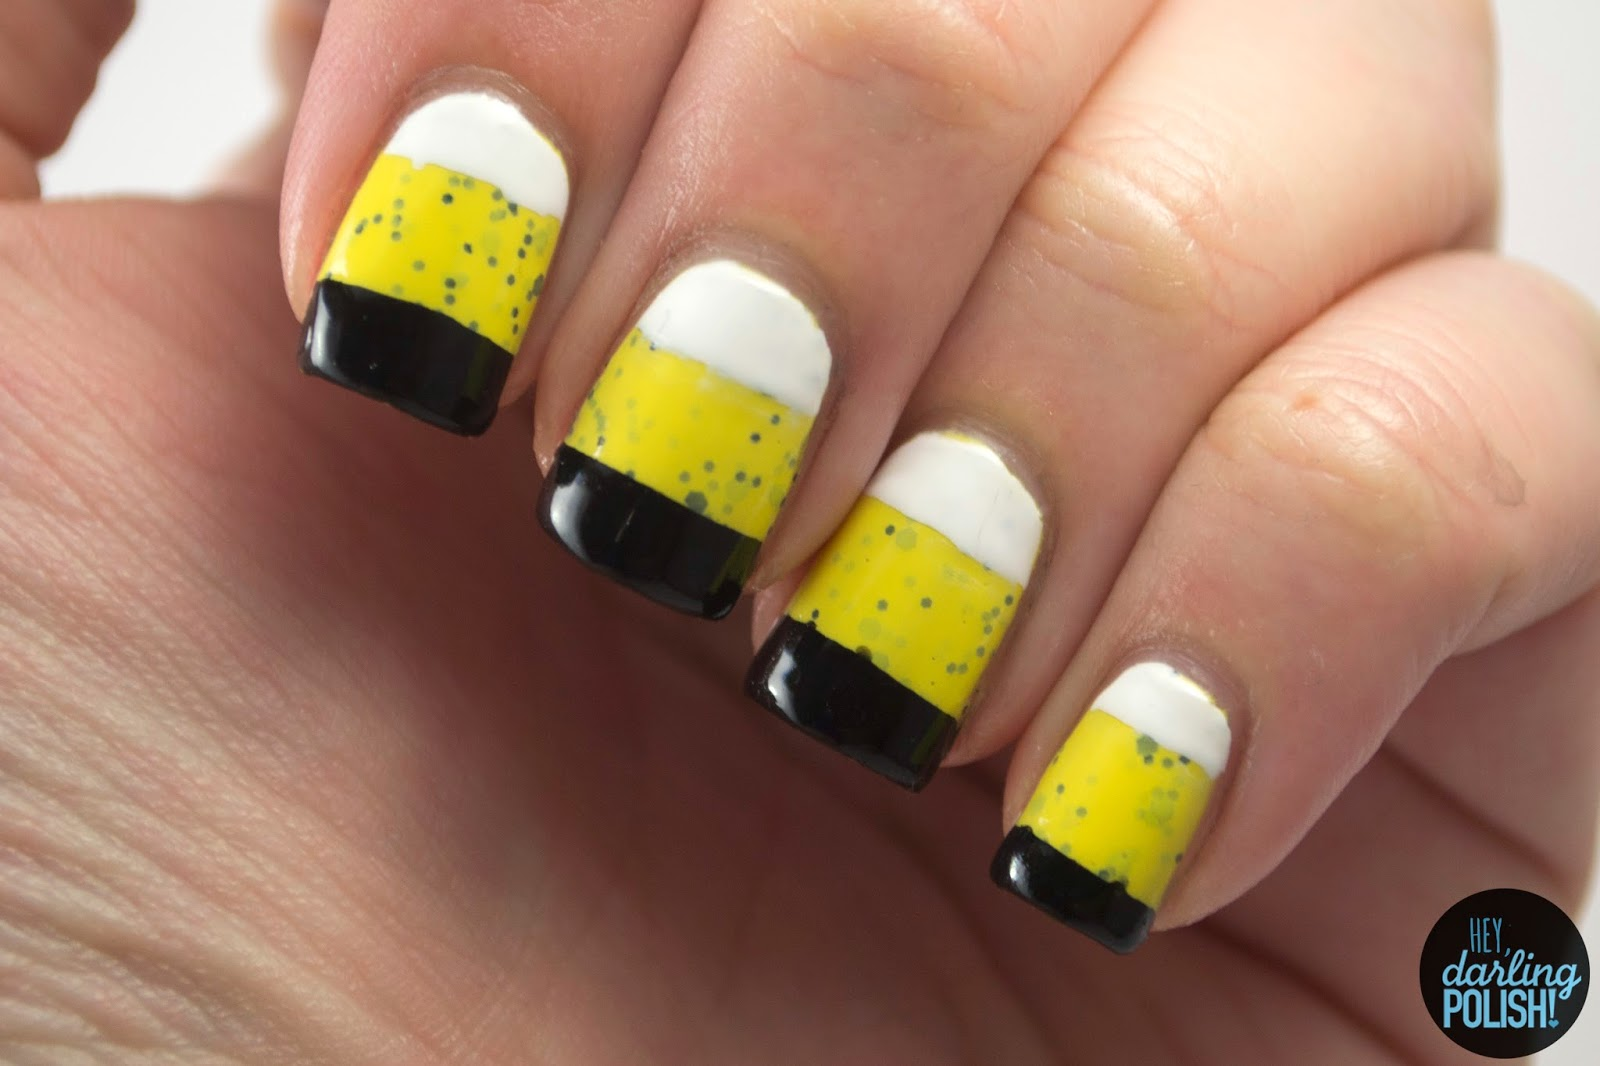 nails, nail art, nail polish, polish, yellow, black, white, glitter, indie, indie polish, indie nail polish, lucky 13 lacquer, the never ending pile challenge, hey darling polish